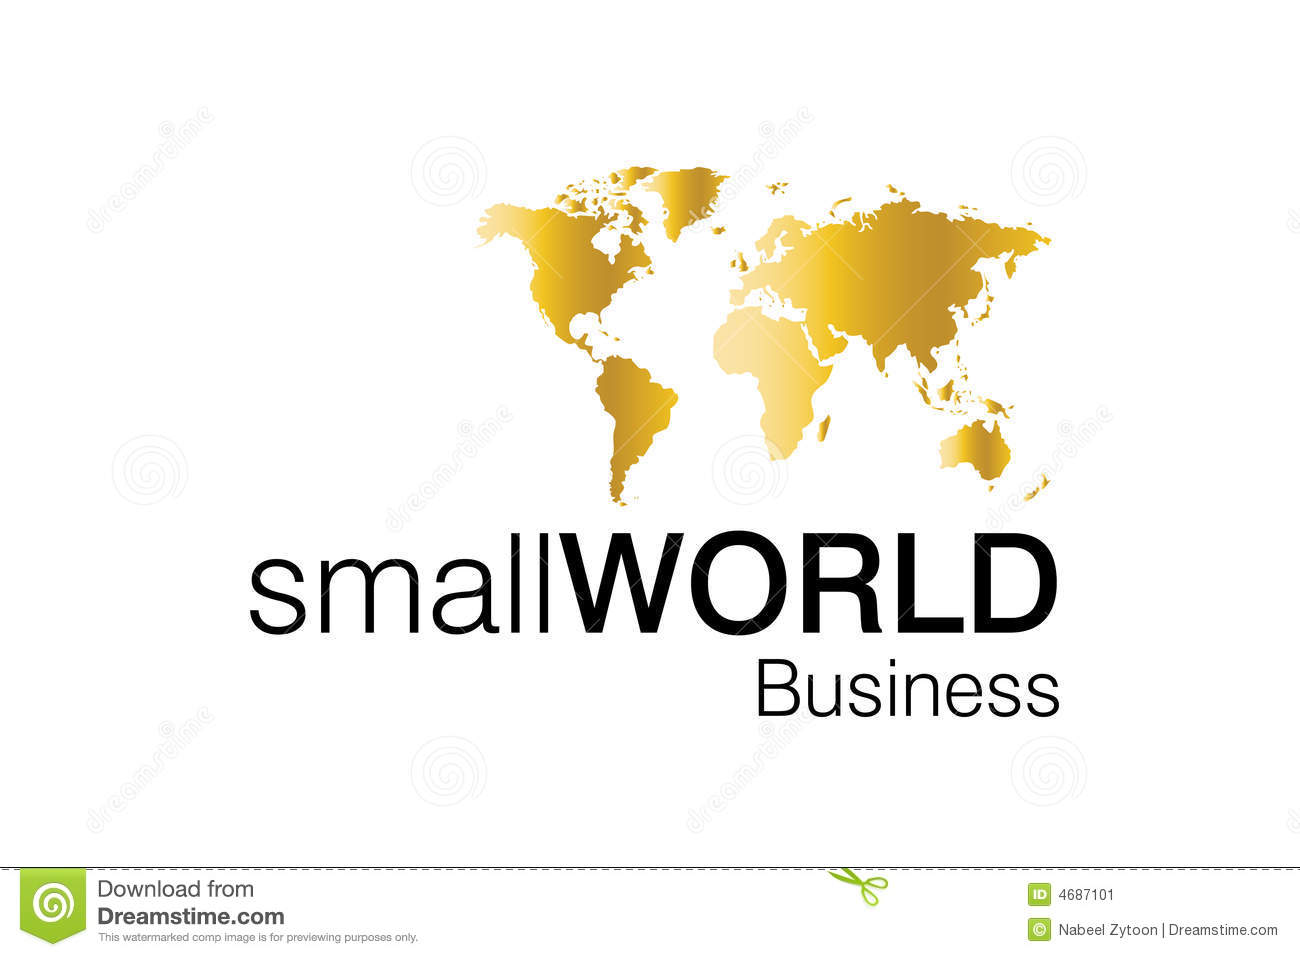 Business logo stock images download 65147 photos for smart business corporations stock image biocorpaavc Gallery